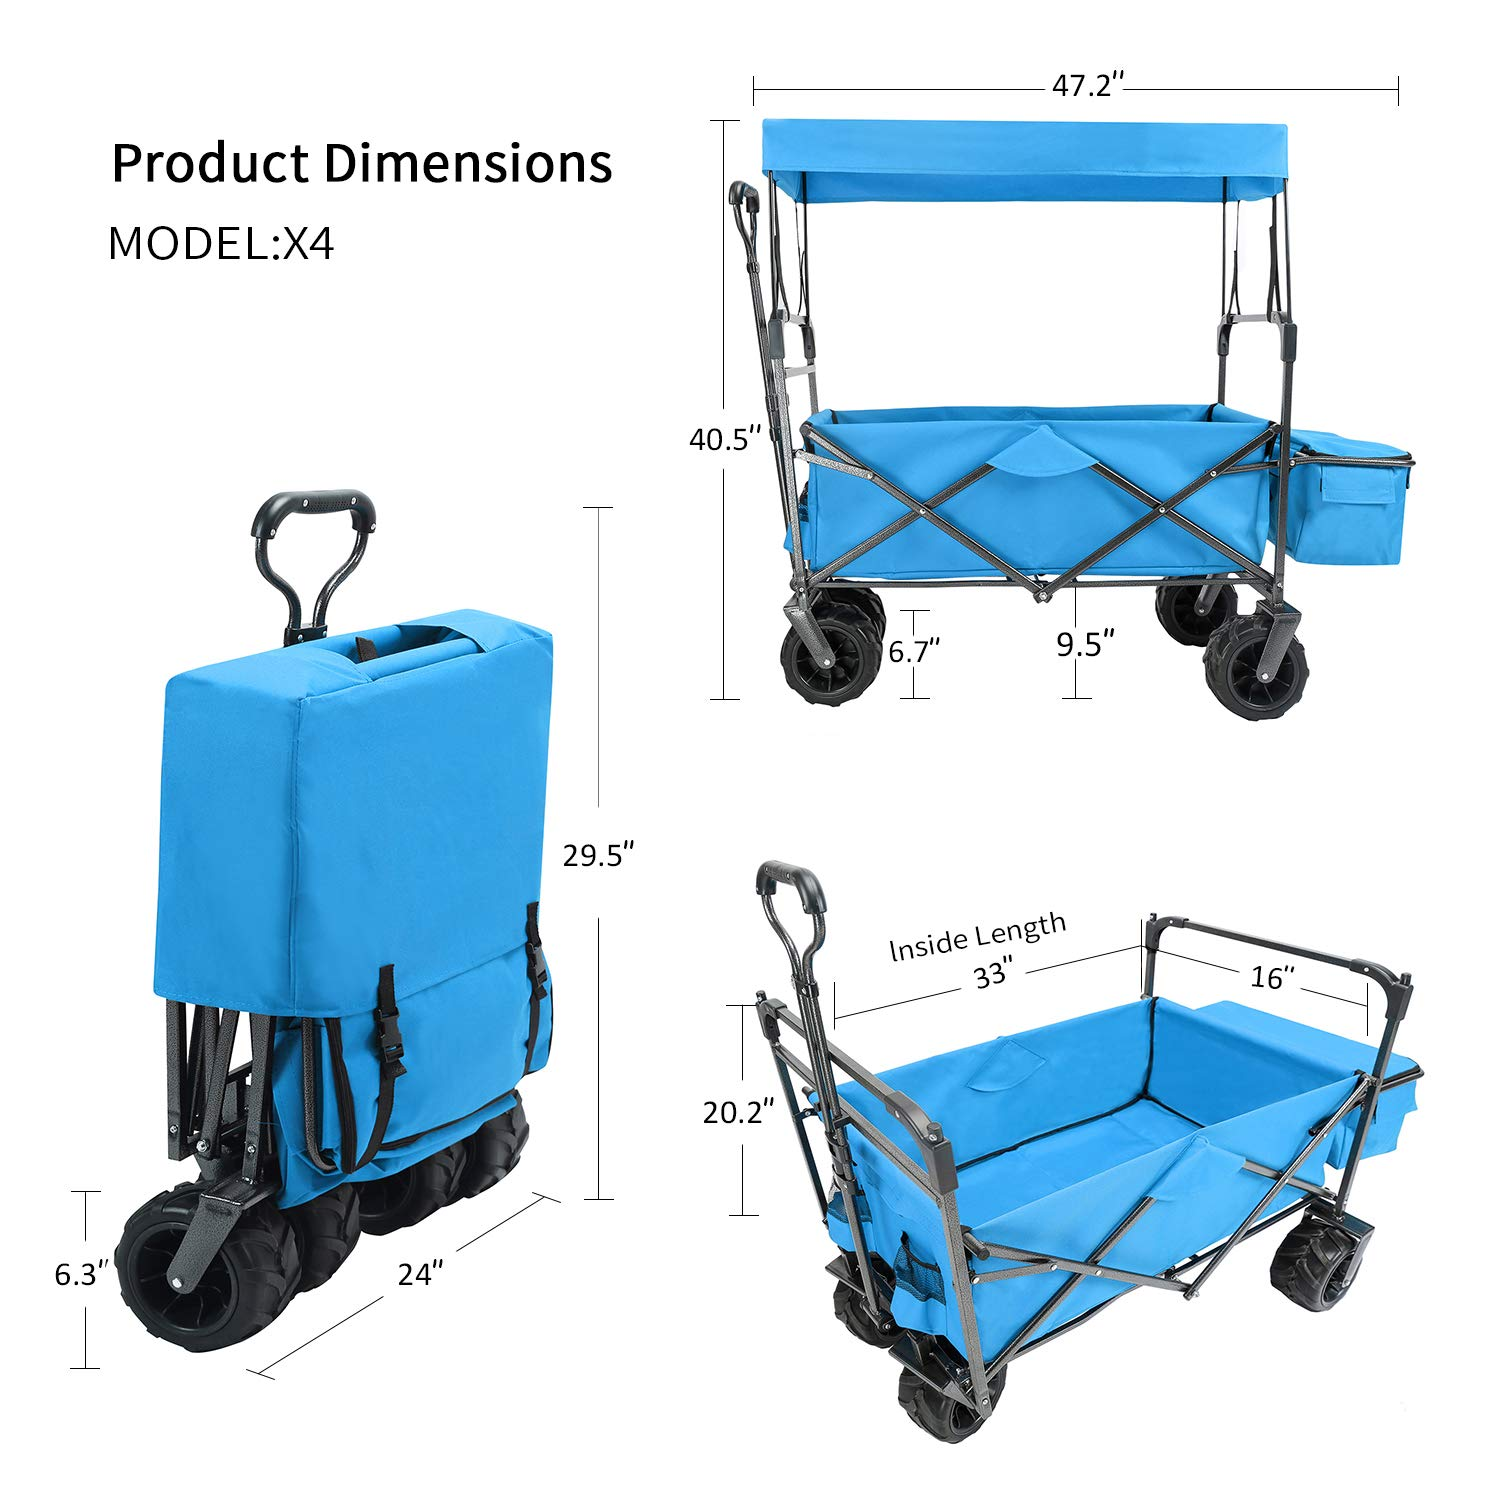 EXTEC Folding Stroller Wagon Collapsible with Canopy Outdoor Sport Baby Trolley Garden Utility Shopping Travel Beach Fishing Wagon Cart Free Carrying Bag Easy Setup NO to Purple